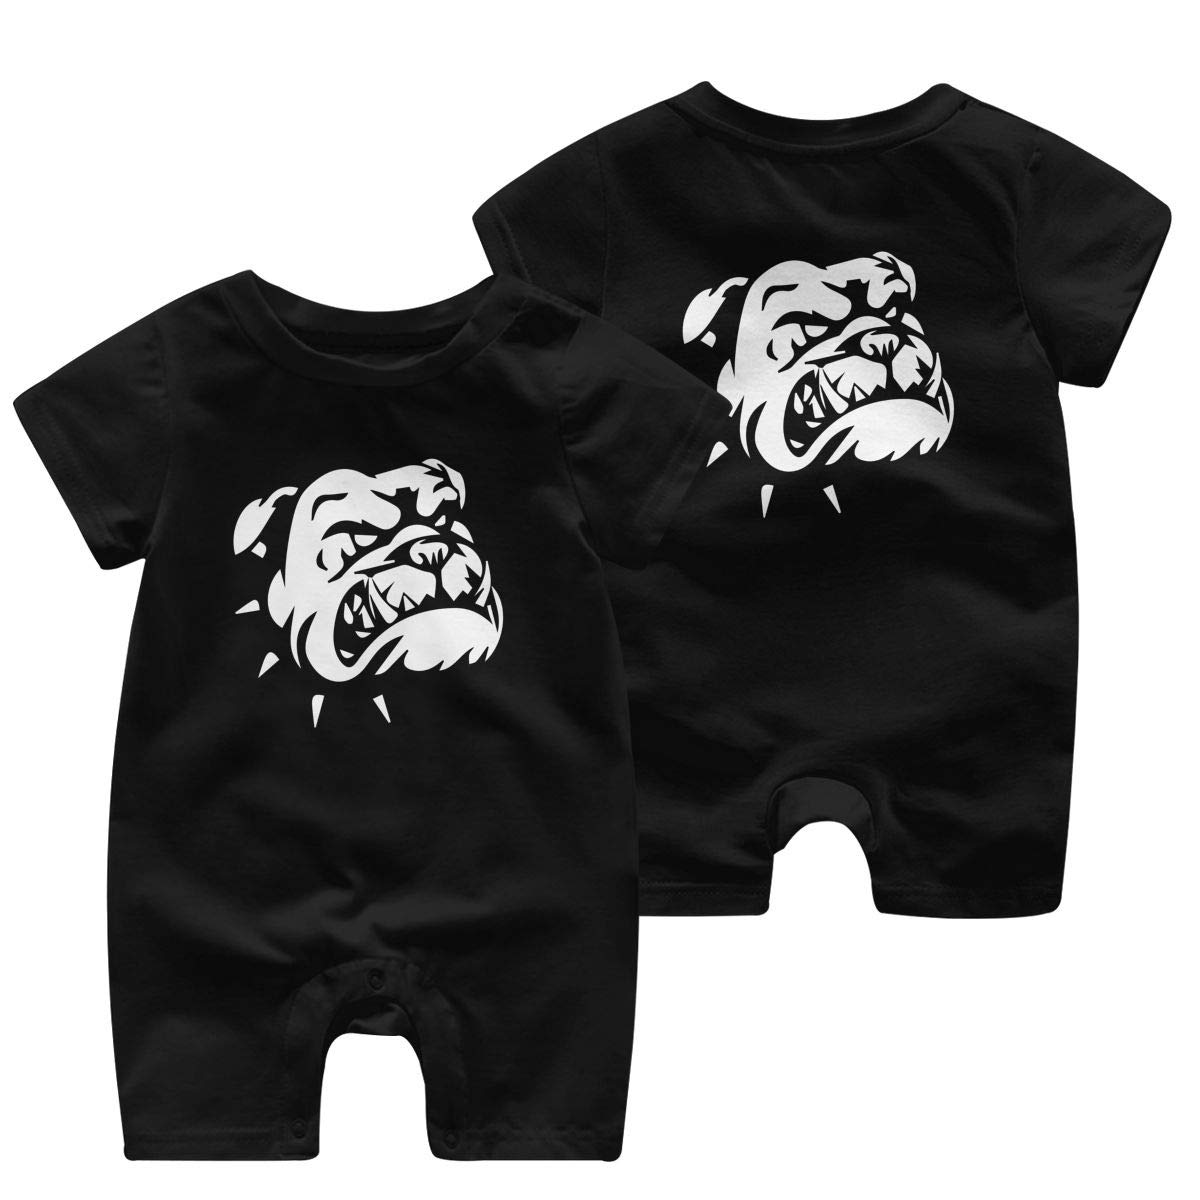 Georgia Bulldog Romper Short Sleeve Basic Romper Coveralls Cute Double Sides Print Baby Boy//Girl Playsuit Jumpsuits